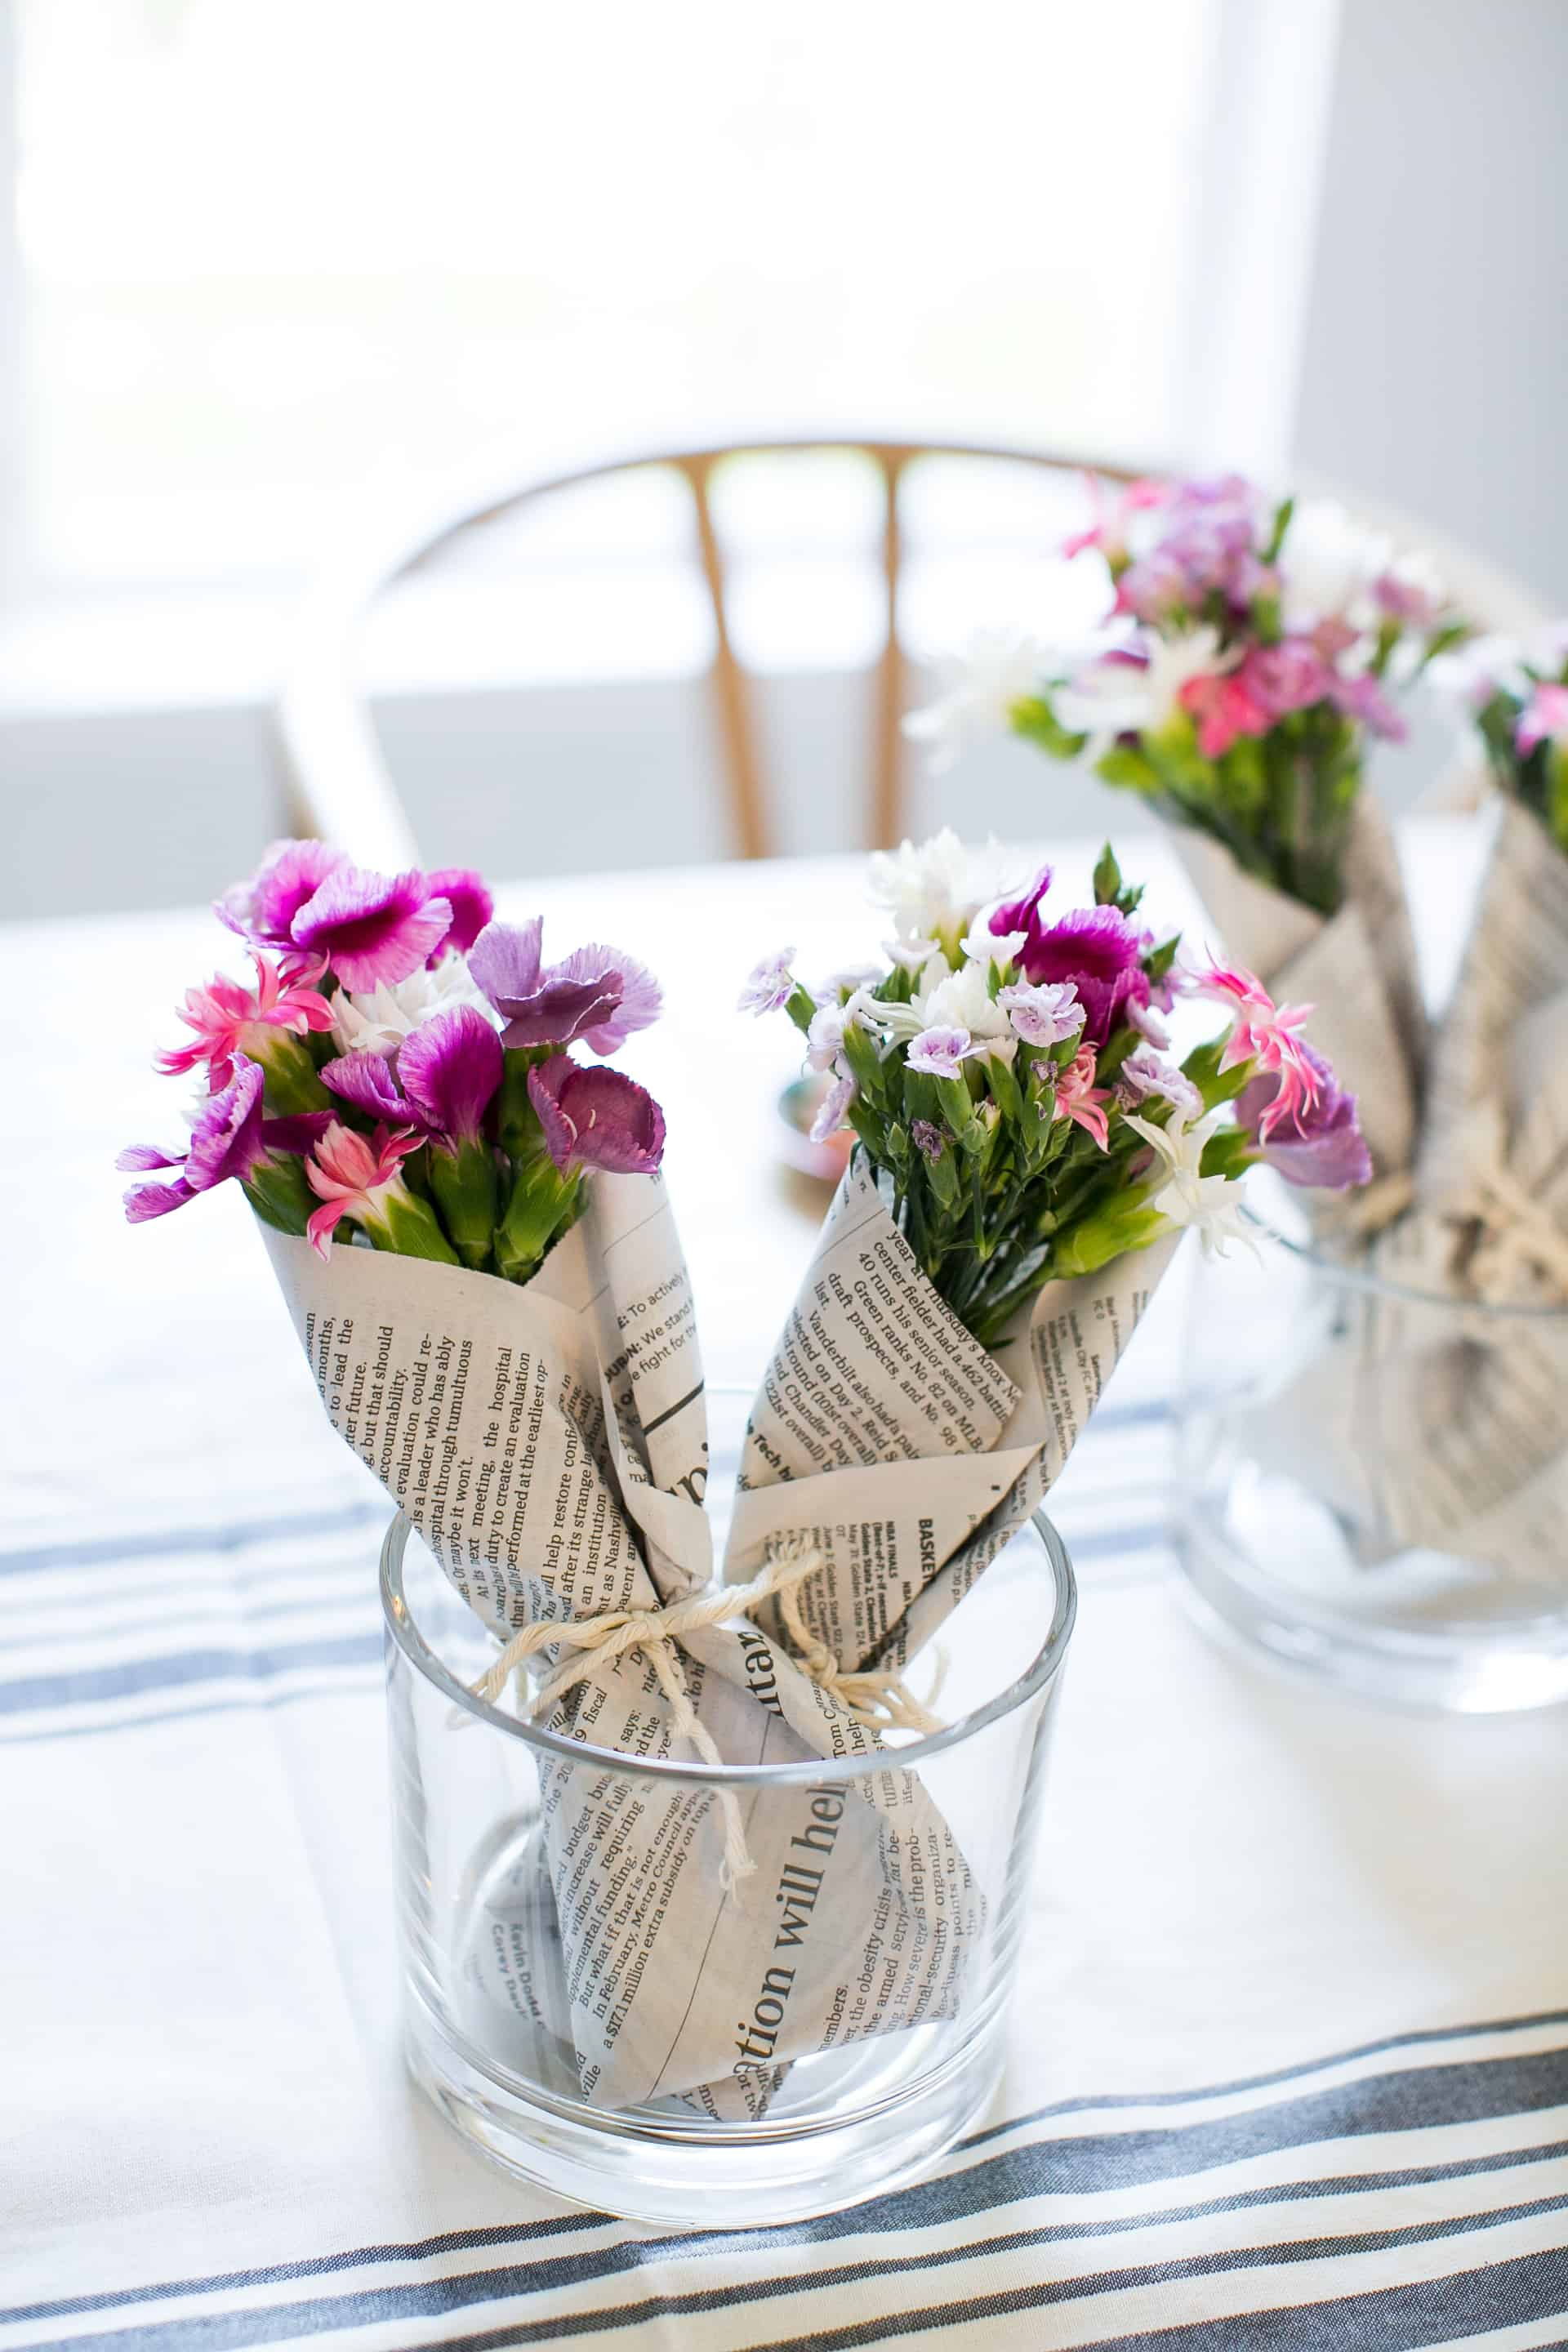 How To Make Mini Bouquets With Grocery Store Flowers Hello Glow